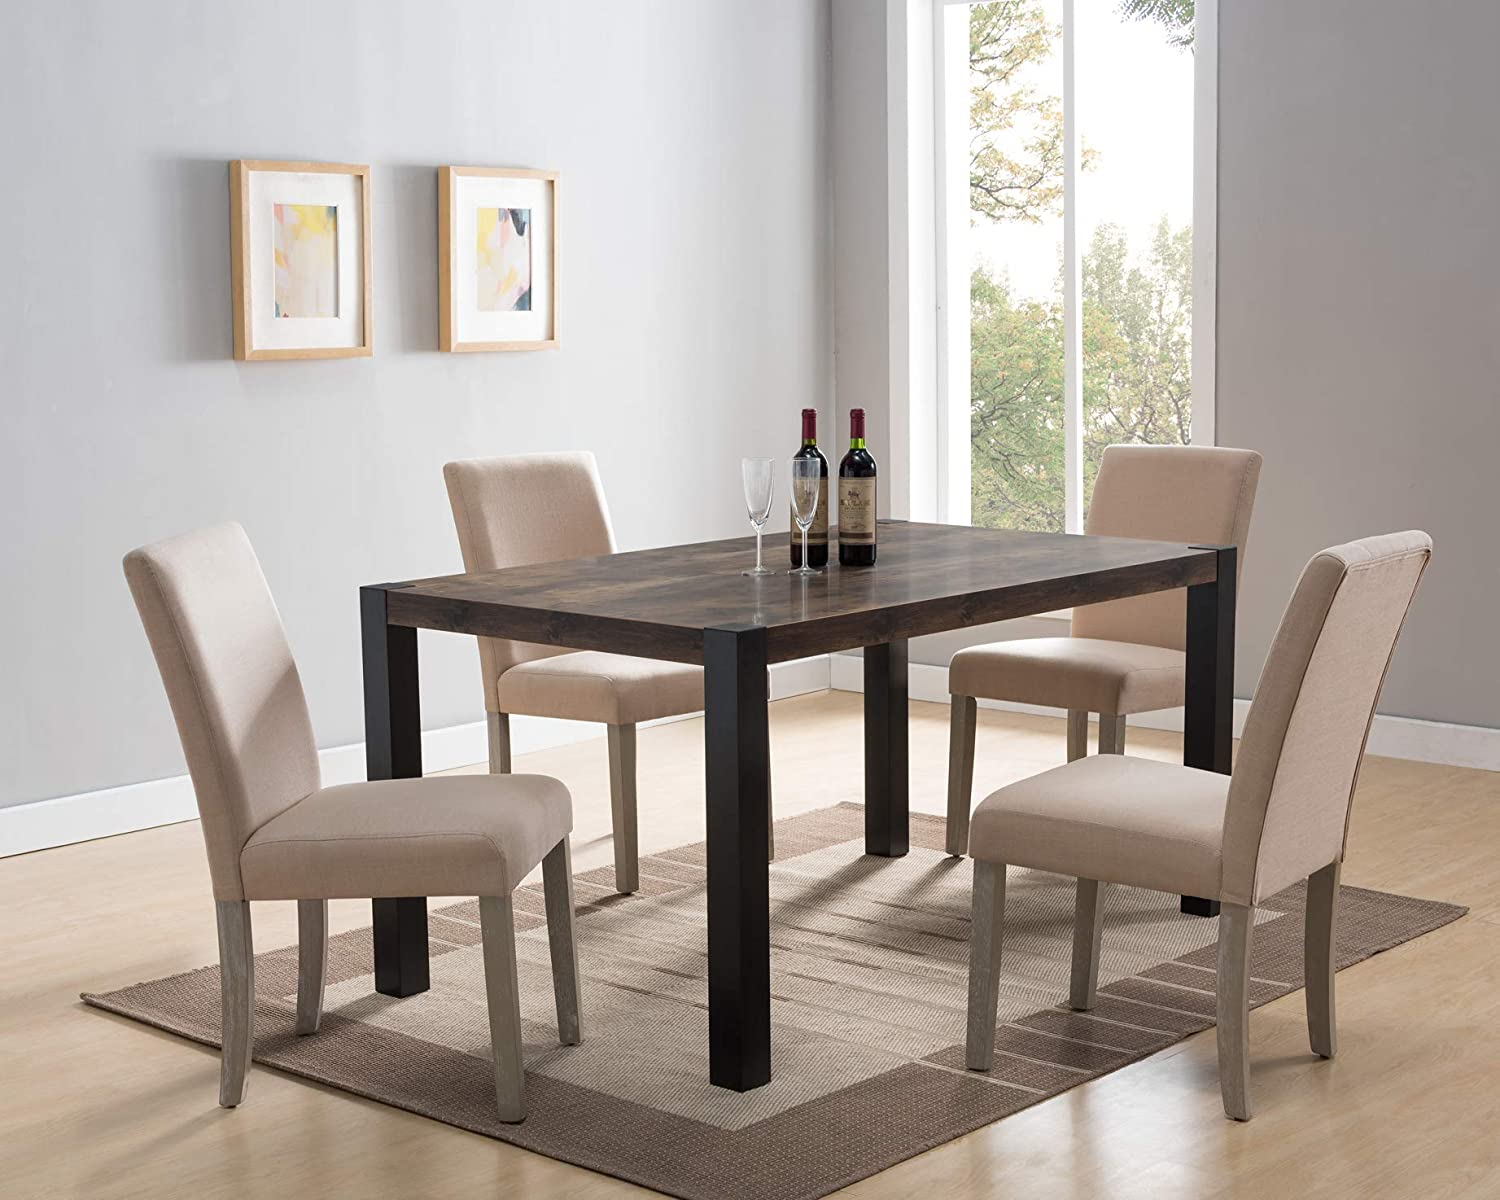 Amazon Com 172221 Mid Century Dining Table Distressed Wood And Black Color Dining Room Table Tables